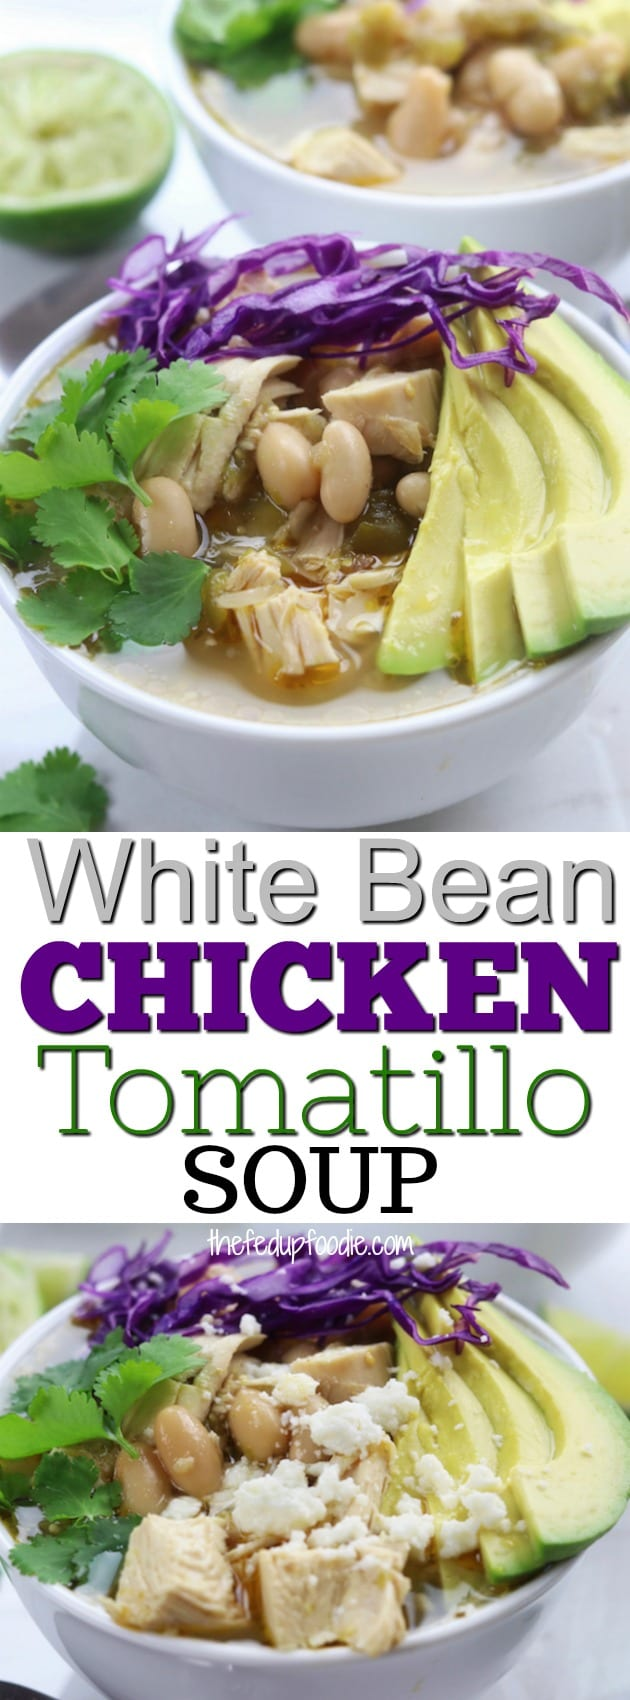 This One Pot White Bean Chicken Tomatillo Soup is a hearty and family friendly meal that can be made on the stovetop or in the slow cooker. Healthy and delicious with tender shredded chicken and rich, flavorful broth. An easy comfort food for anytime of year. #SoupRecipe #WhiteBeanSoup #ChickenSoup https://www.thefedupfoodie.com/